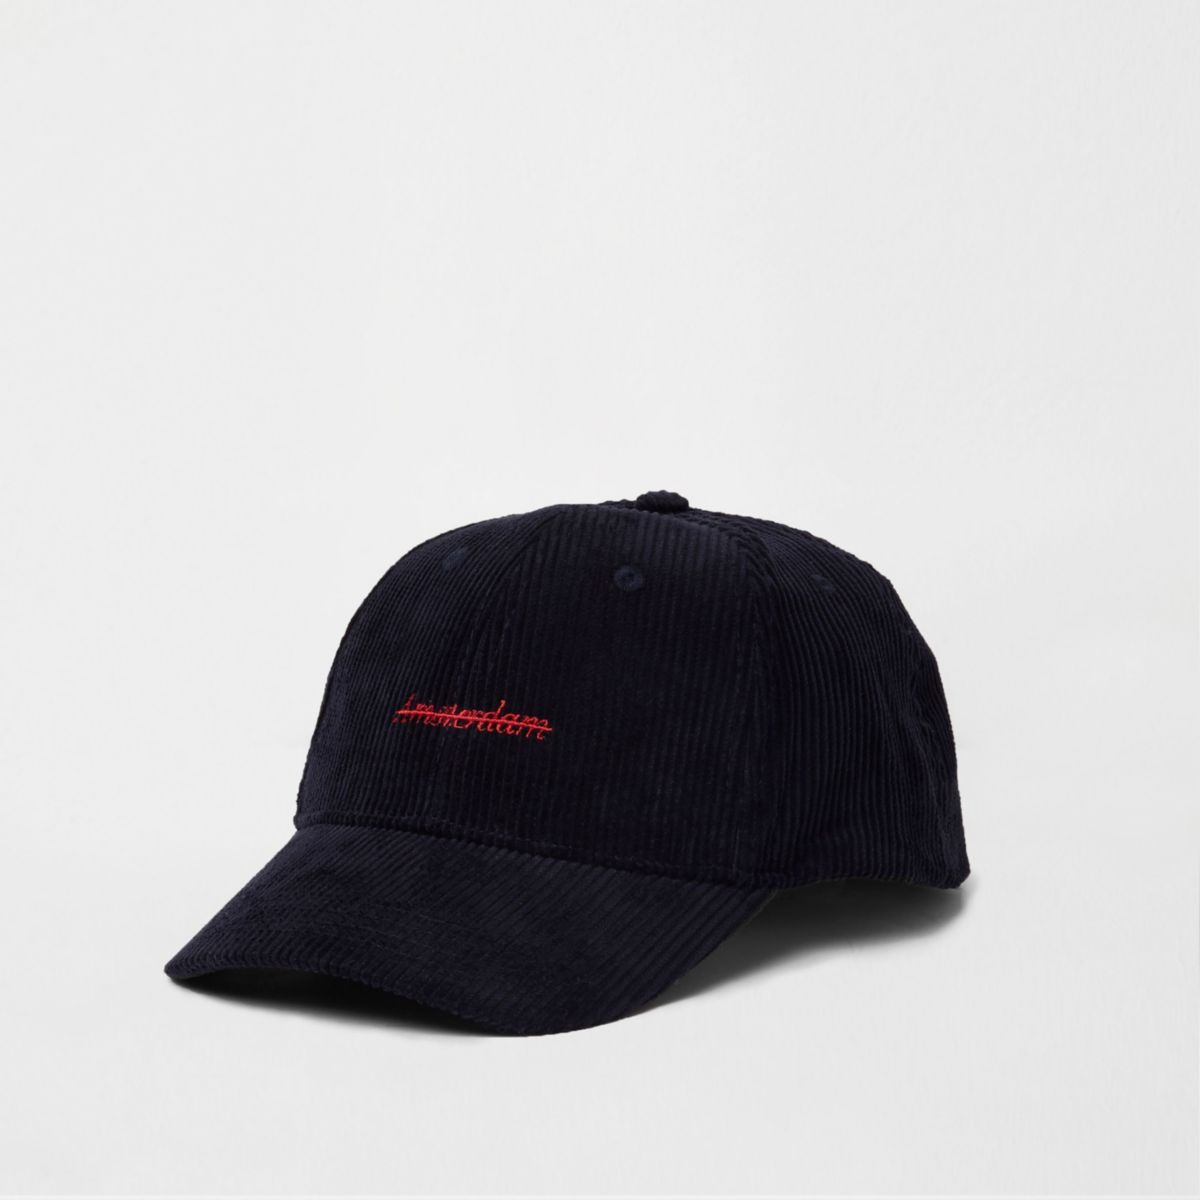 Navy 'Amsterdam' embroidered baseball cap